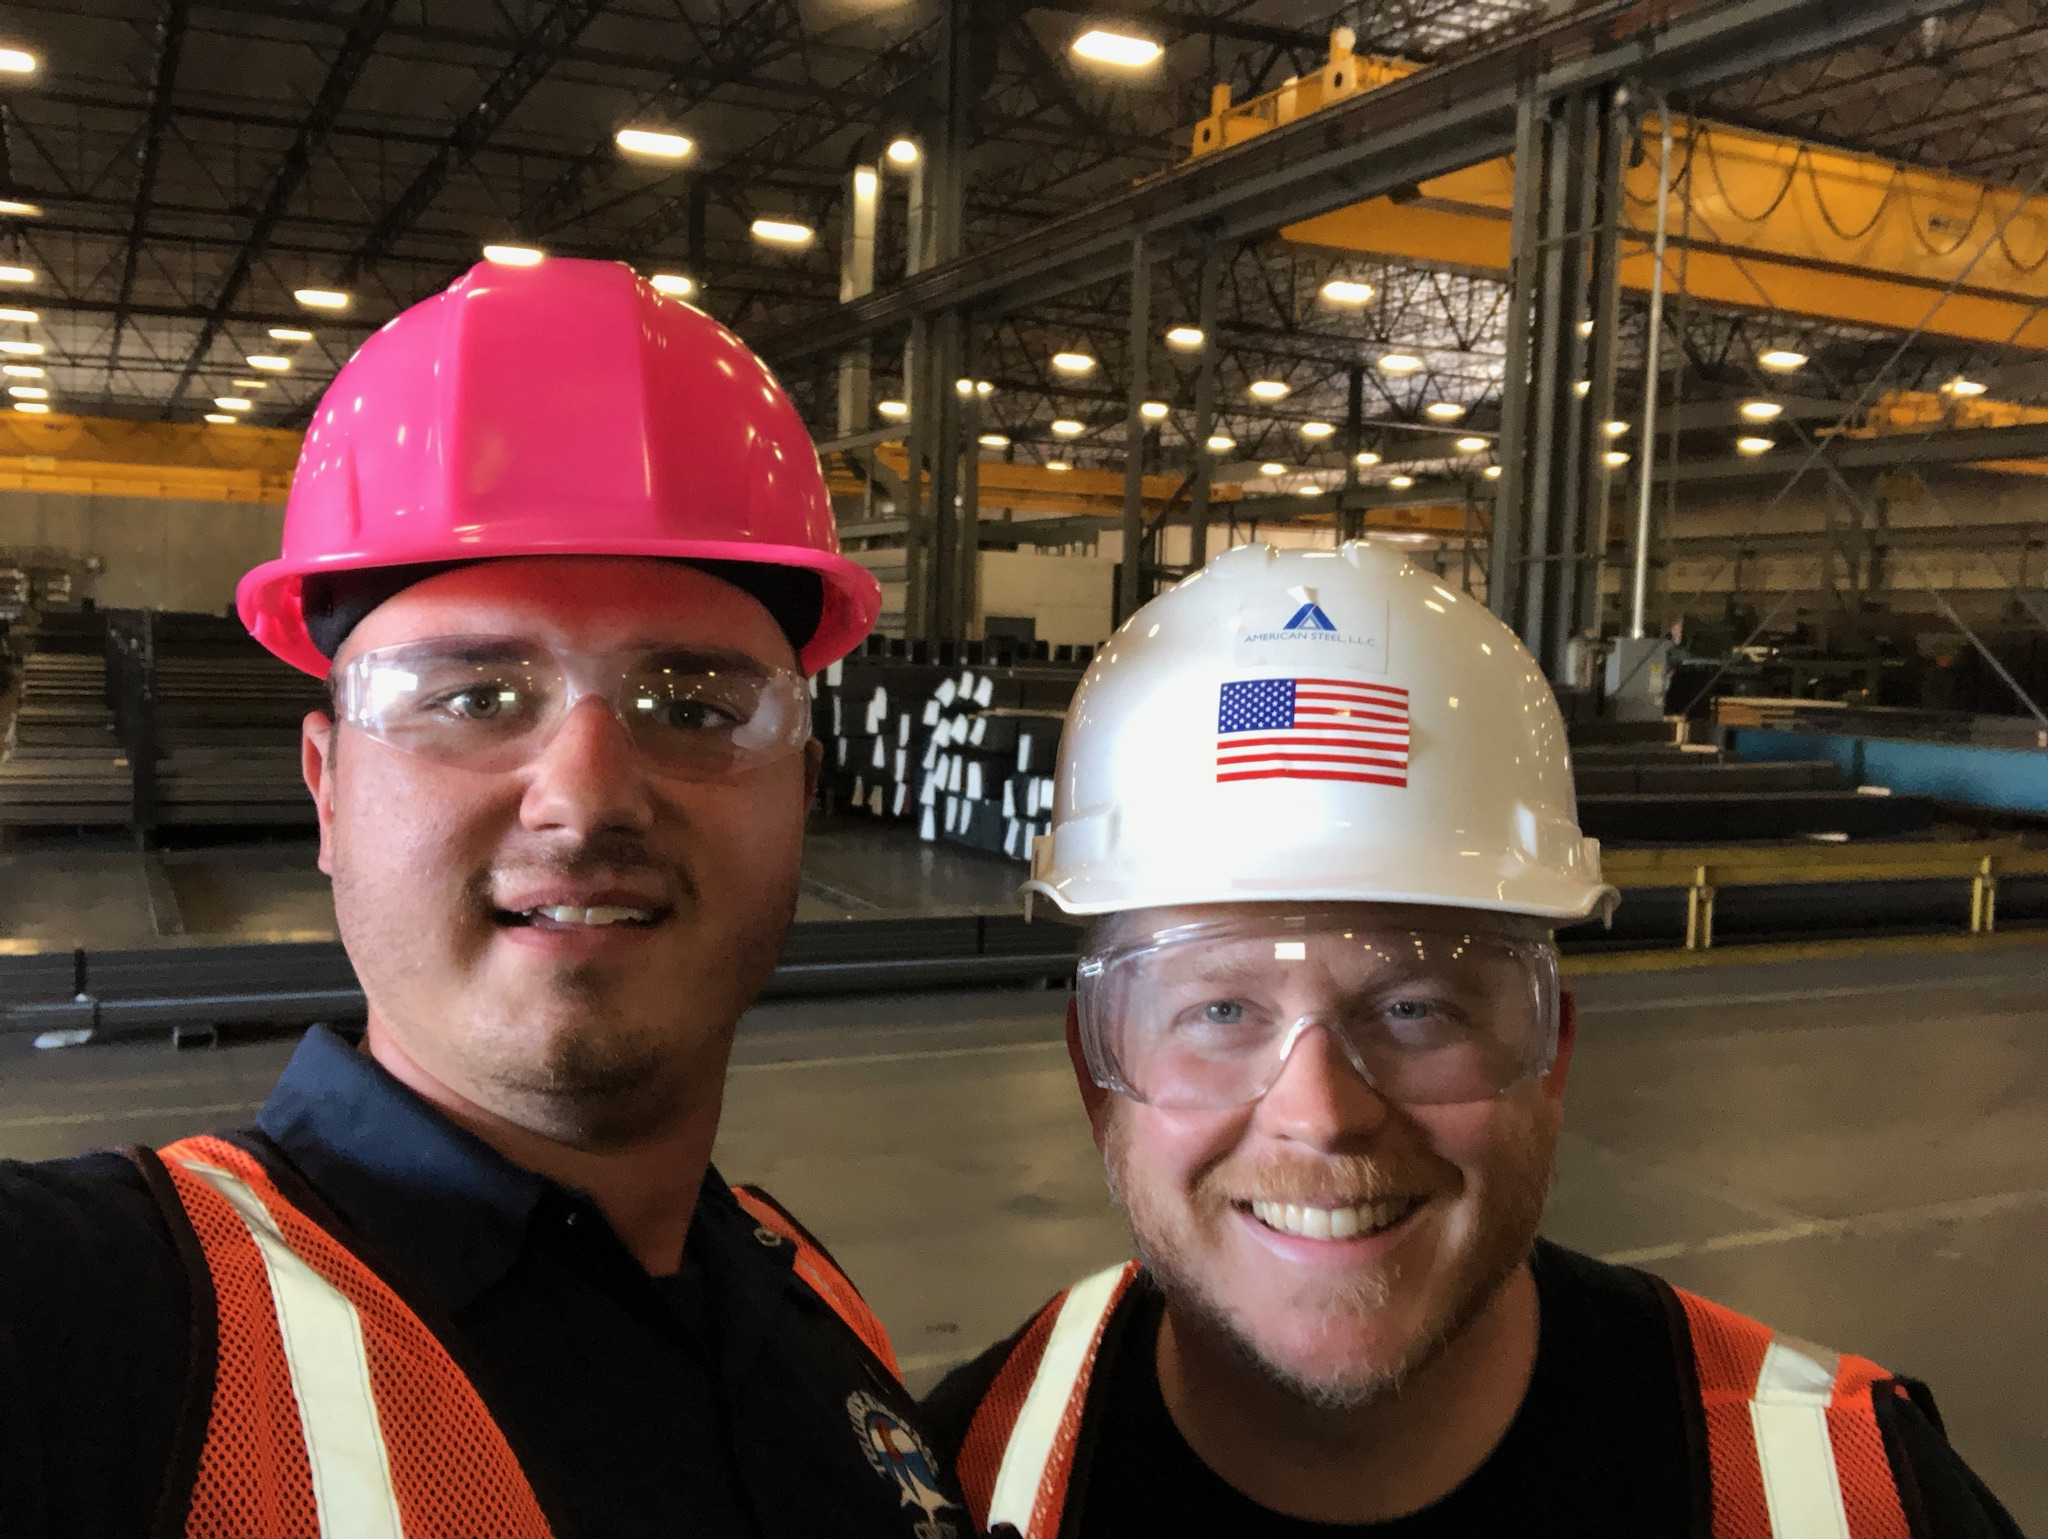 Visiting the steel company